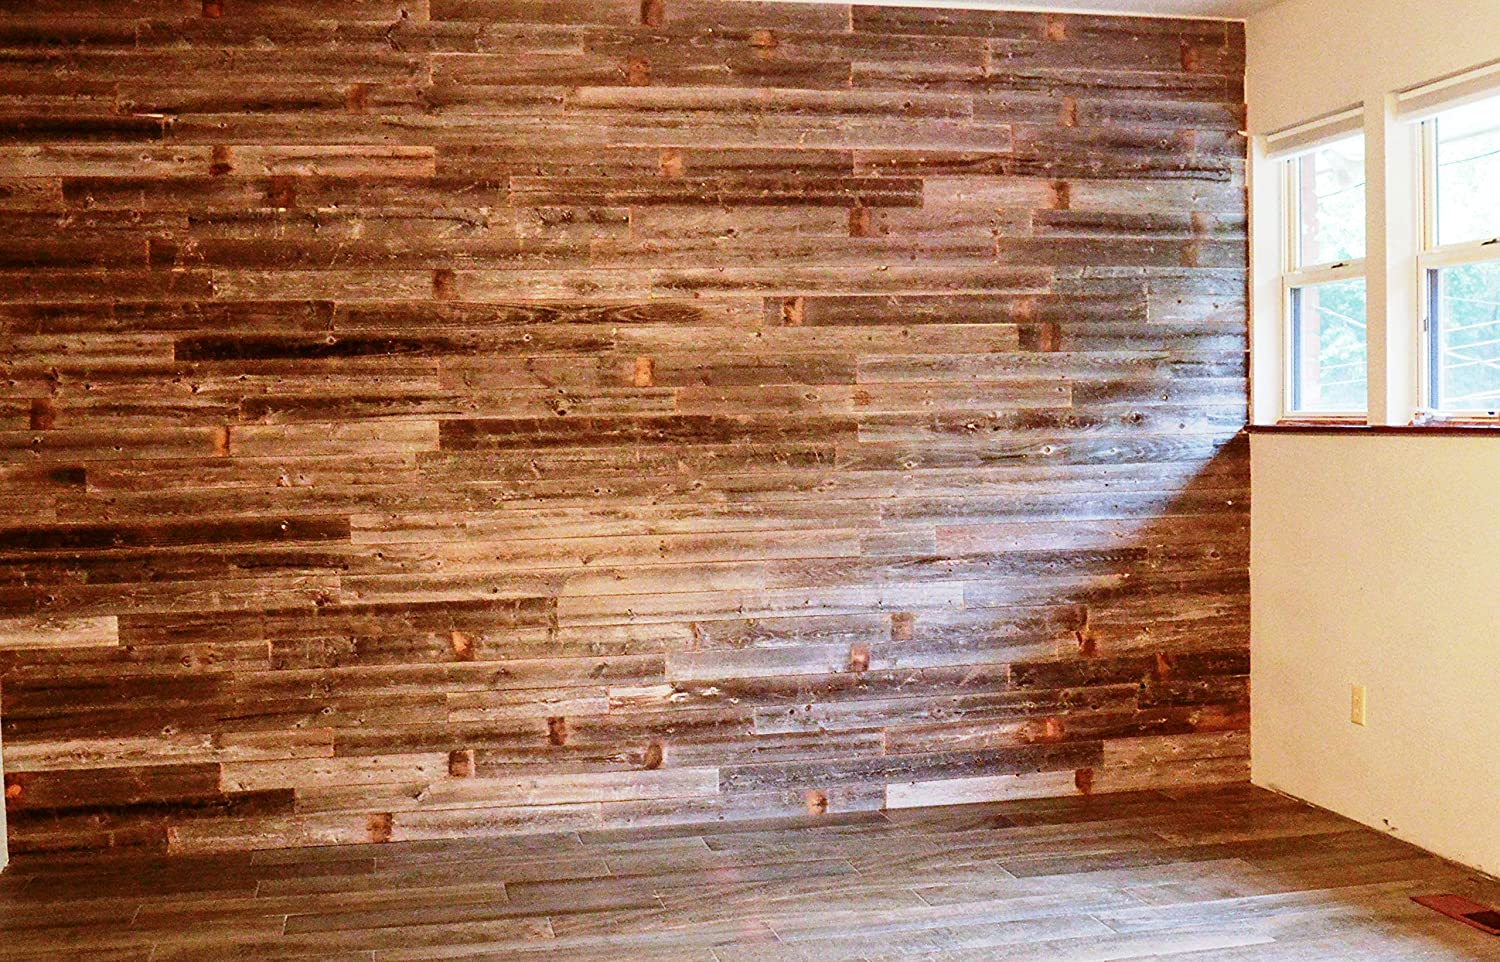 Peel & Stick Rustic Reclaimed Barn Wood Paneling, Real Wood, Rustic Wall Planks - Easy Installation (3 Square FEET) ROCKIN' WOOD